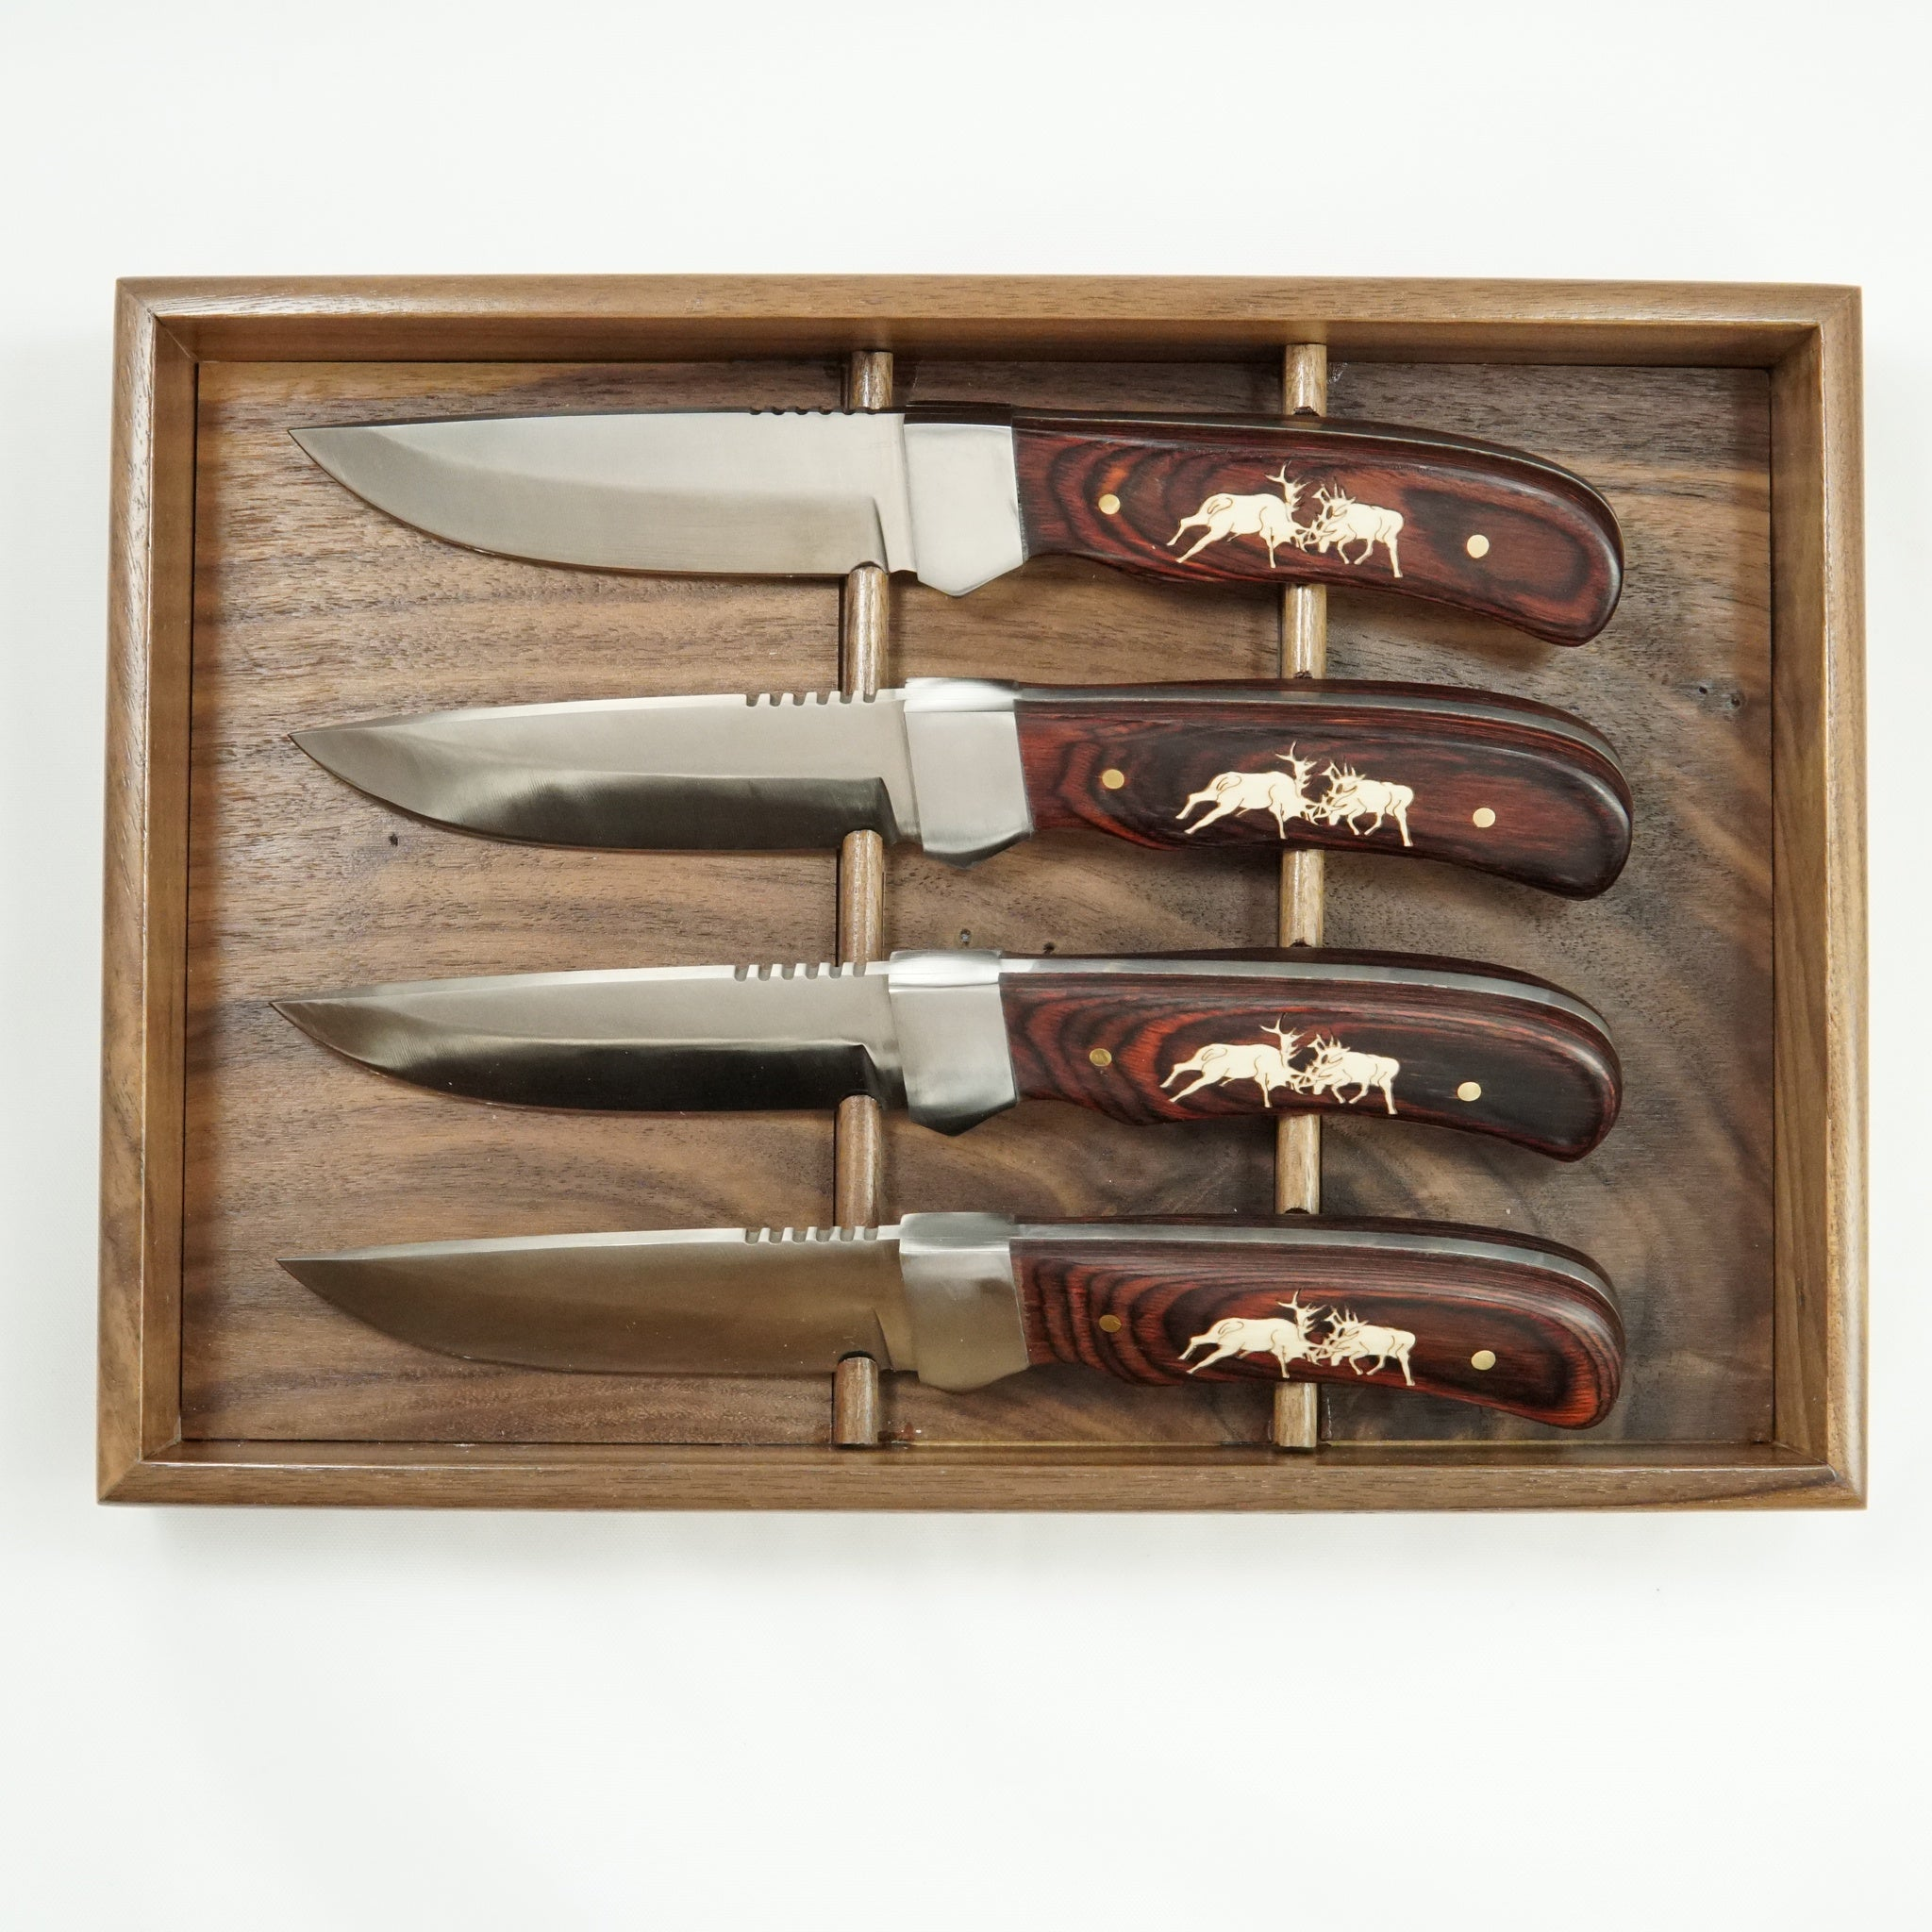 FIGHTING ELK STEAK KNIFE SET